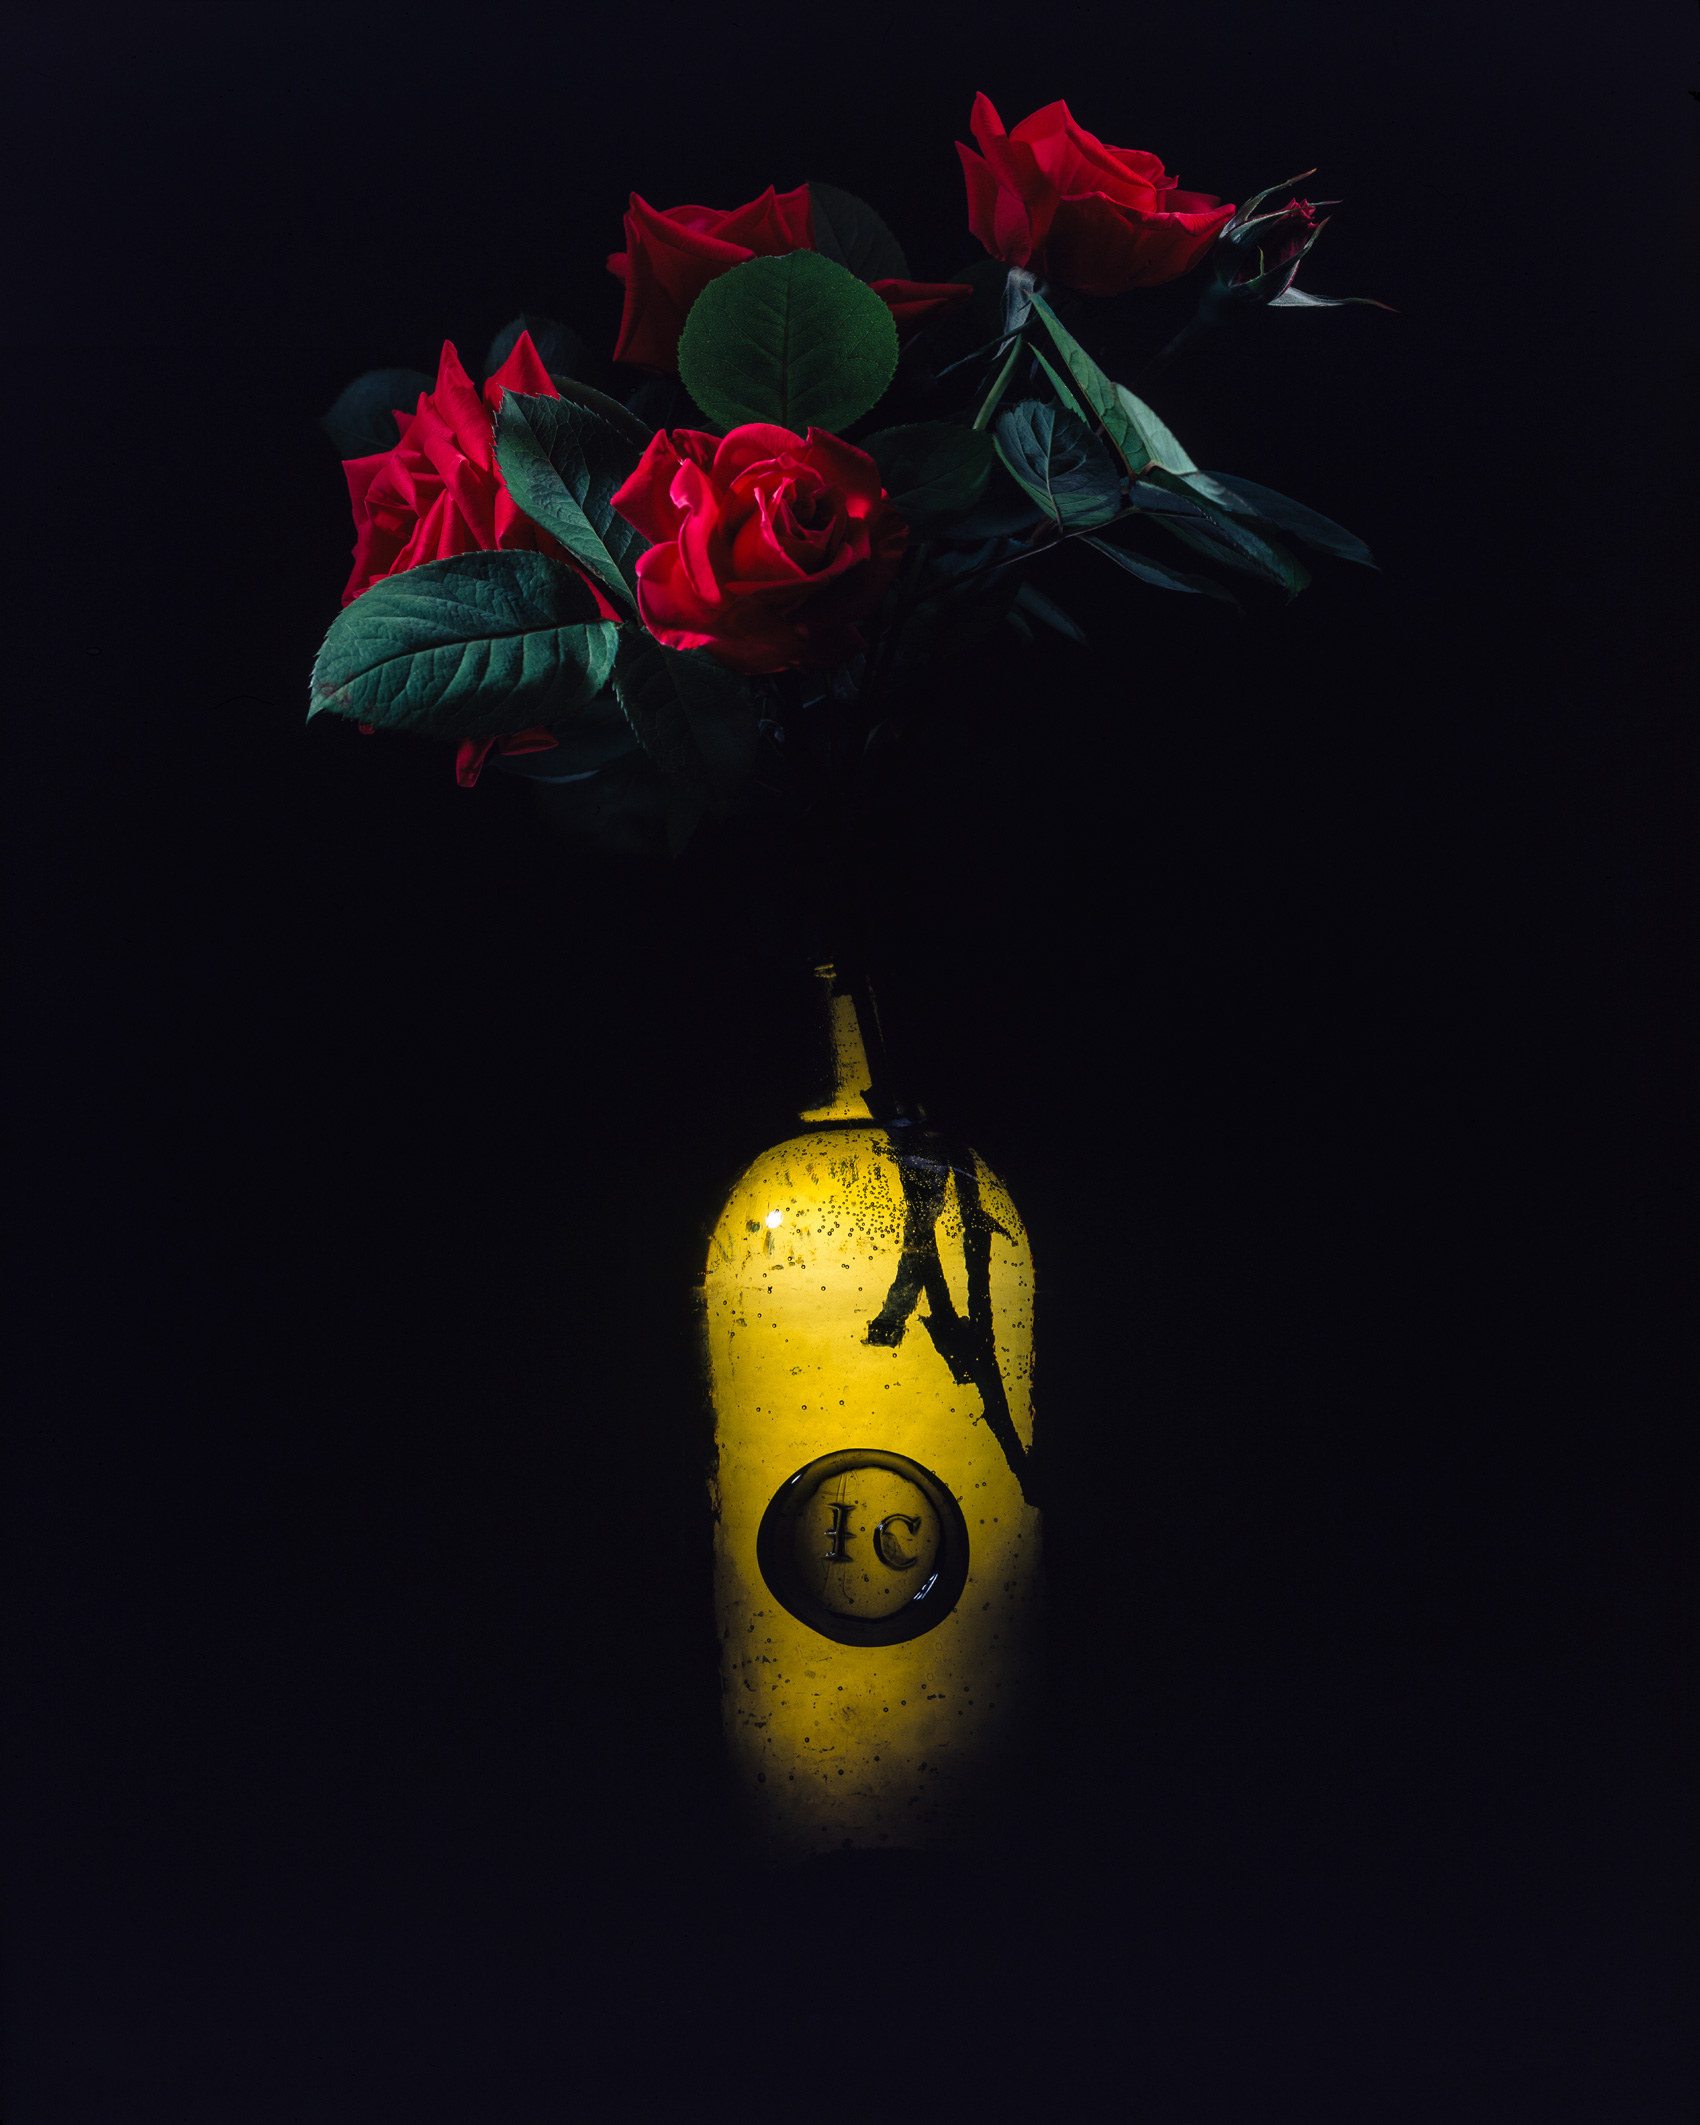 Red Roses in an Old Bottle